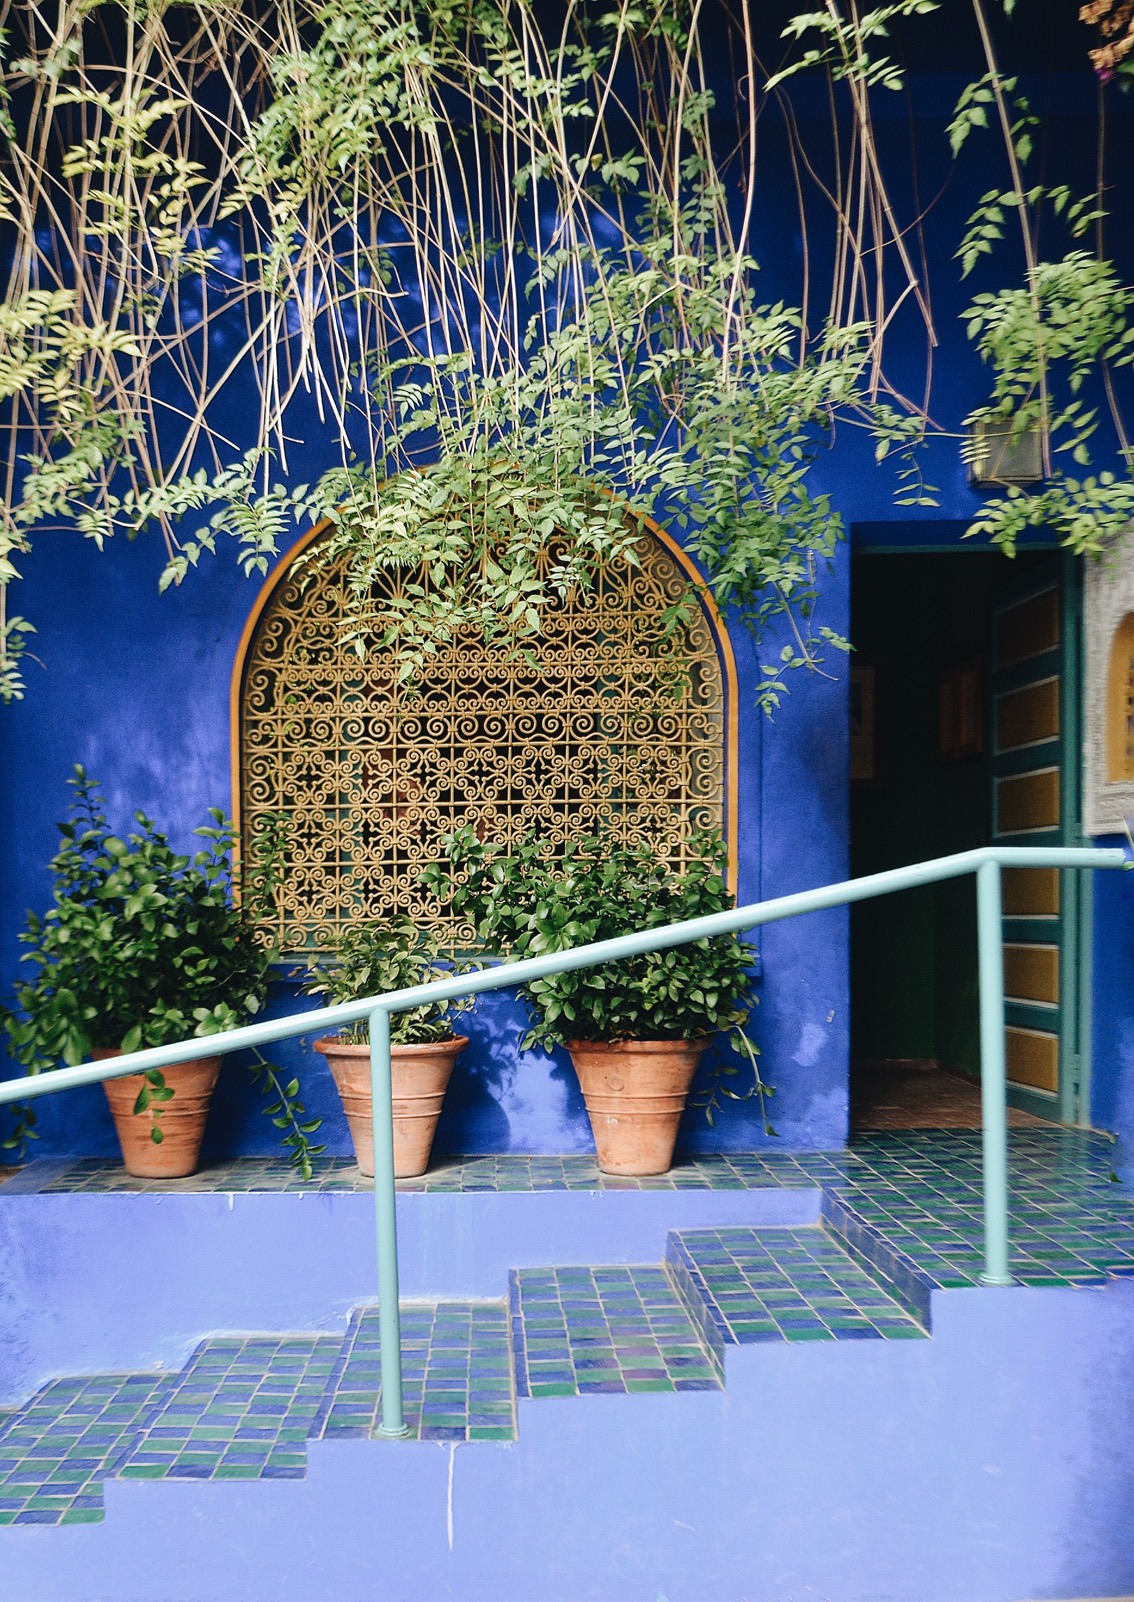 8 Jardin Majorelle - a magical place in Marrakech.